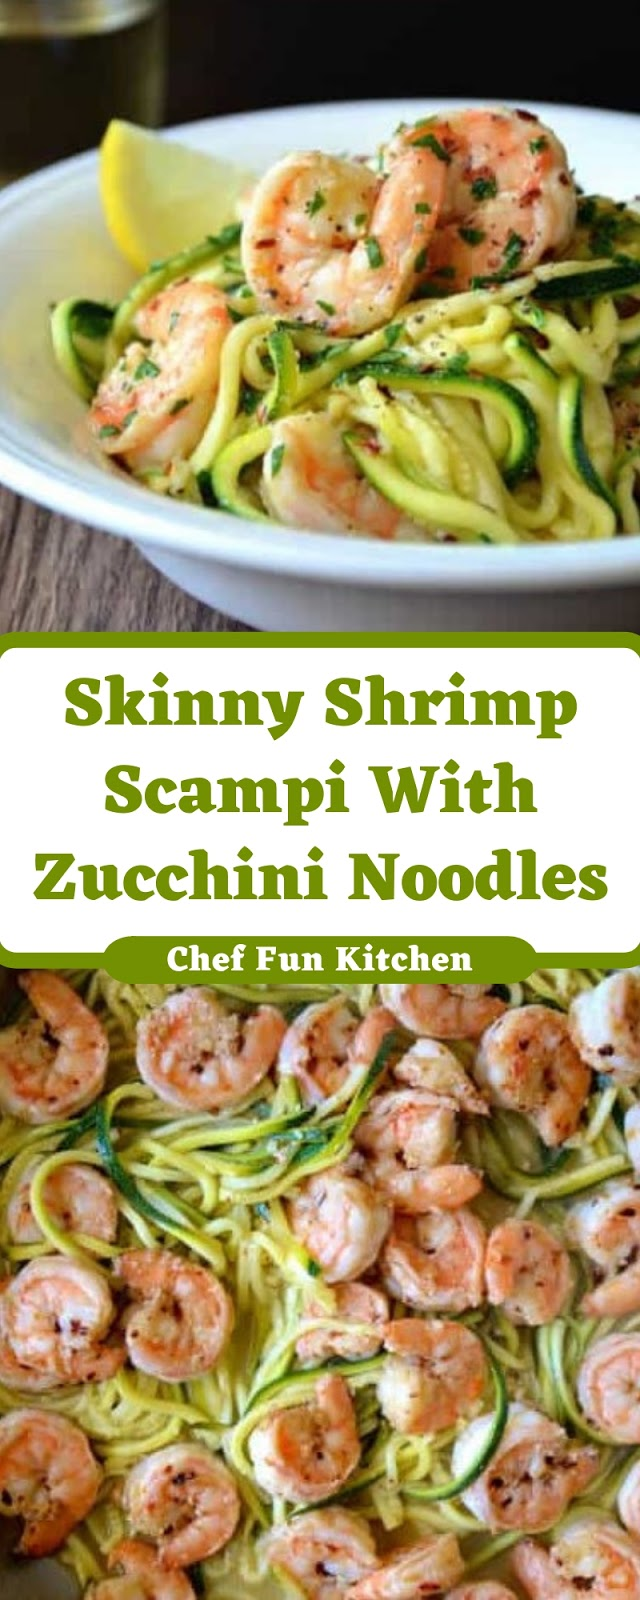 Skinny Shrimp Scampi With Zucchini Noodles